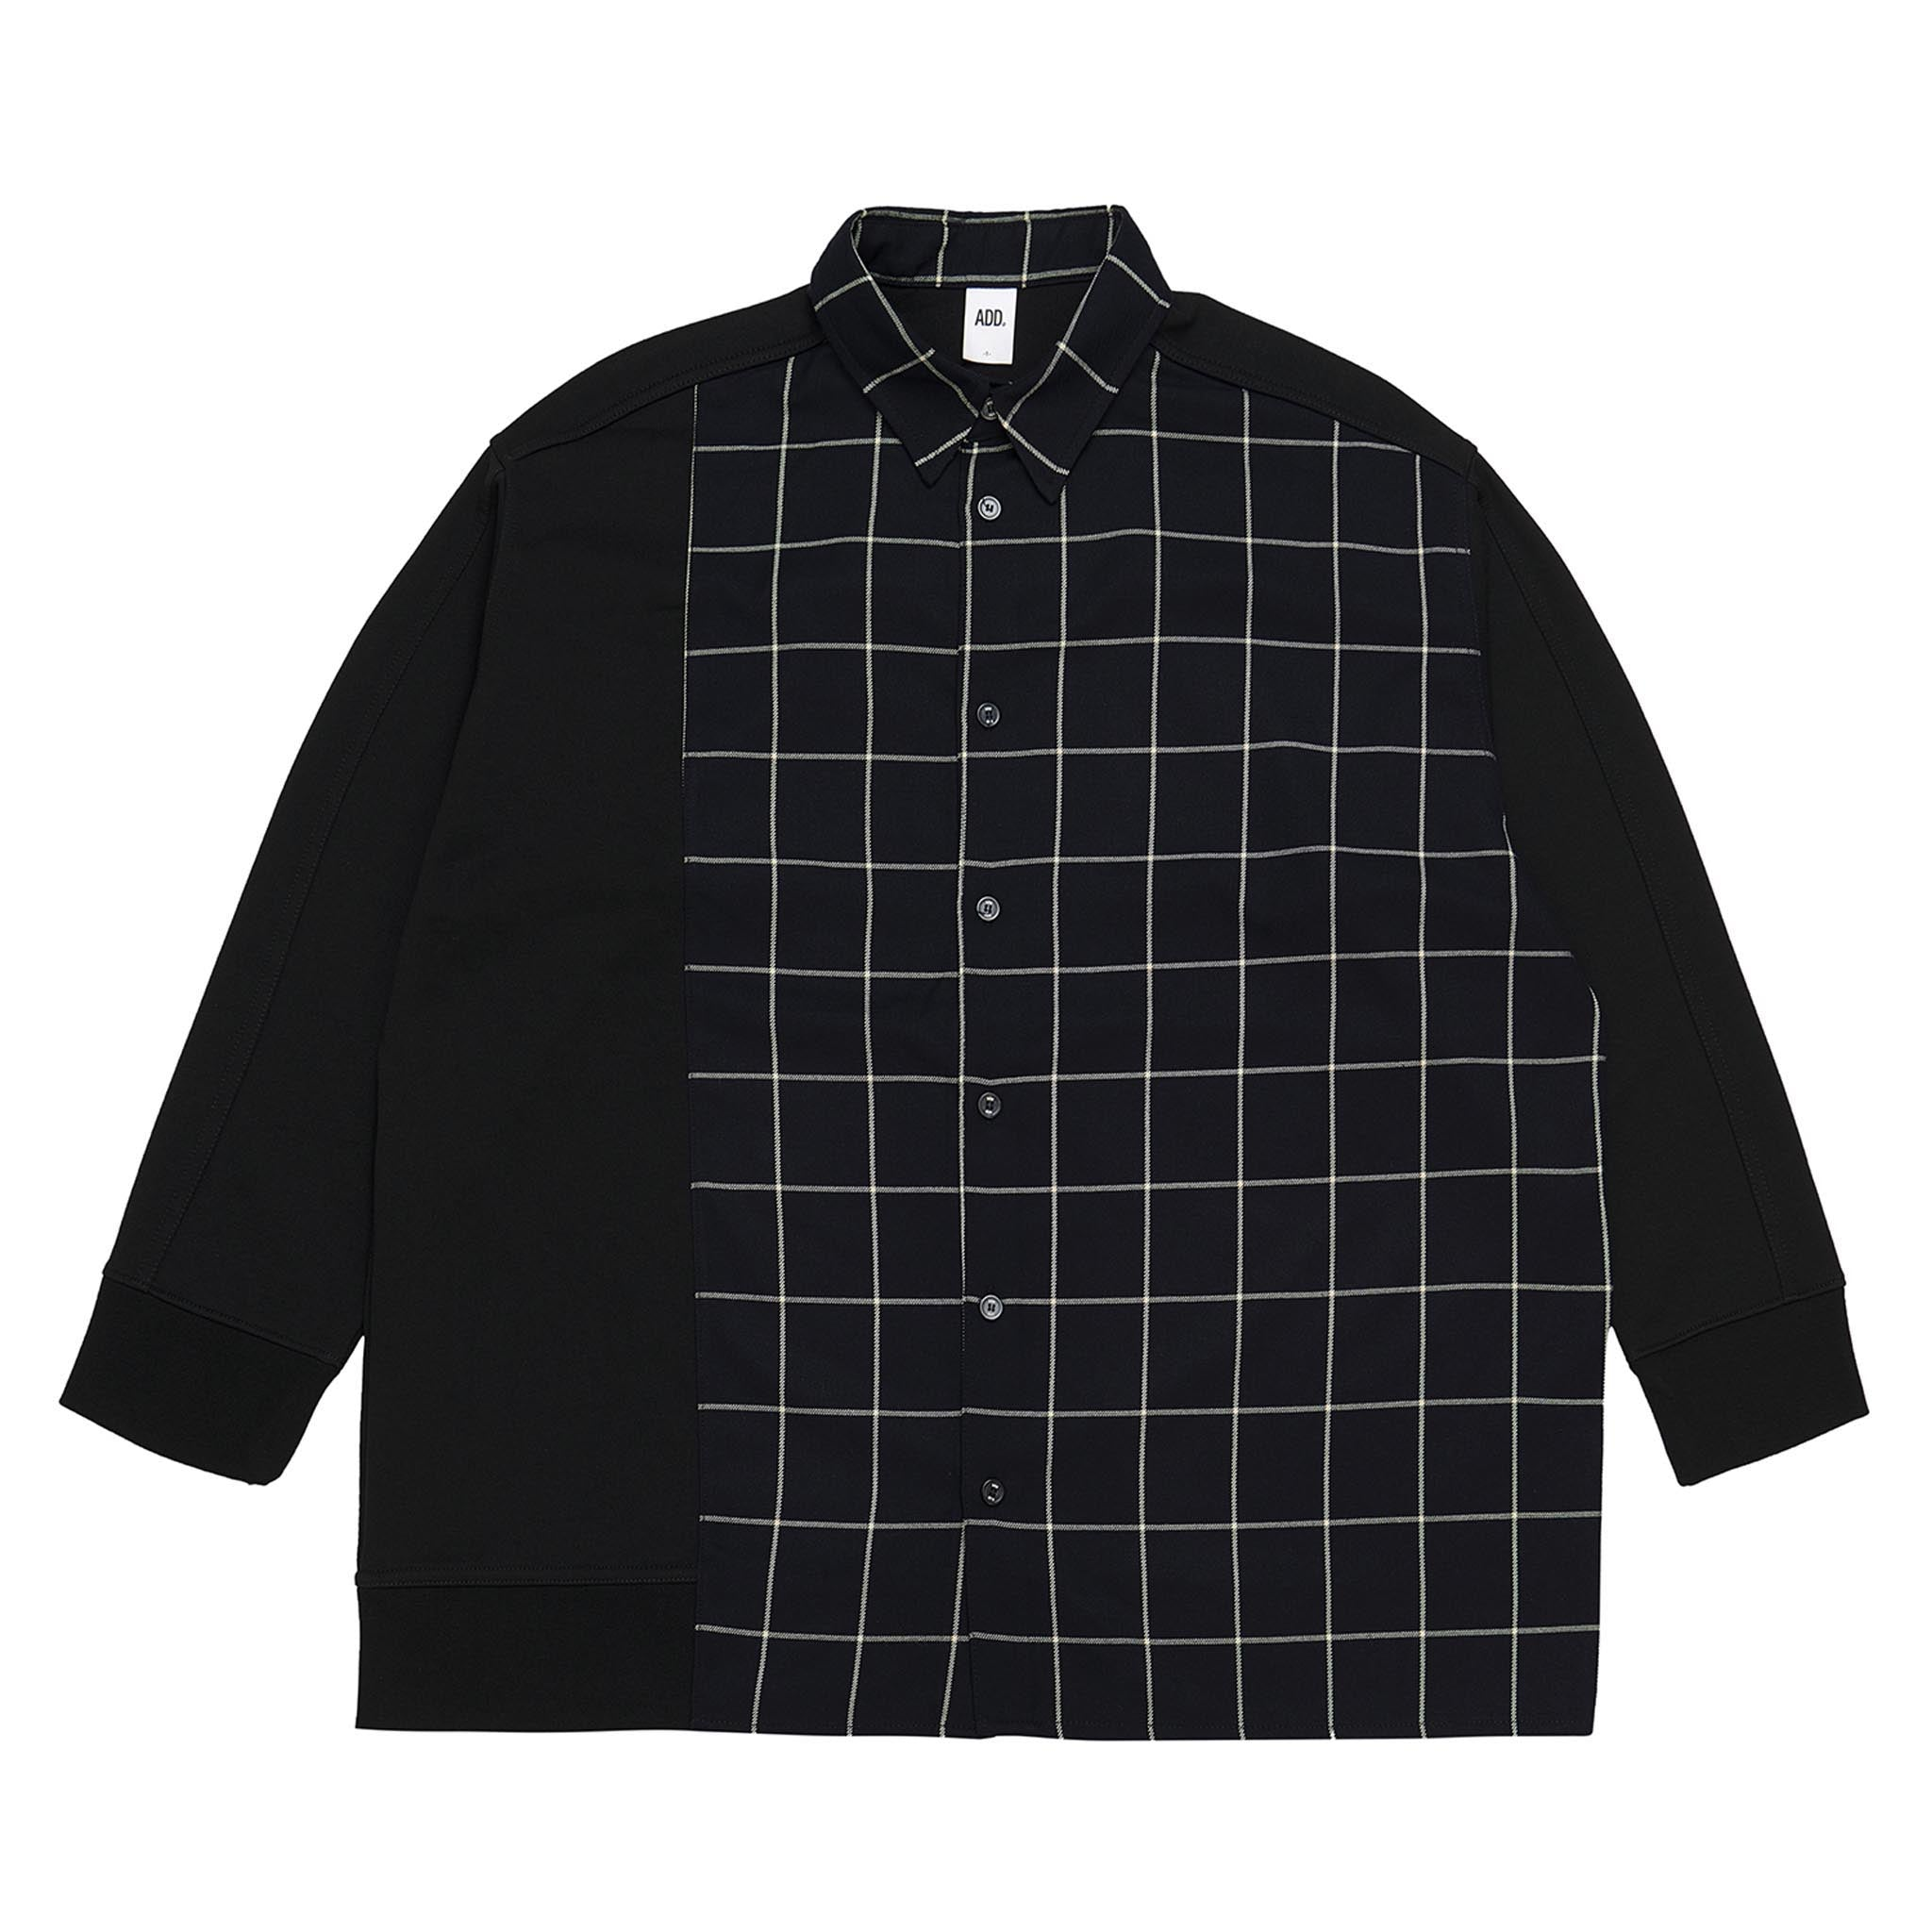 ADD Hybrid Check Shirt Black